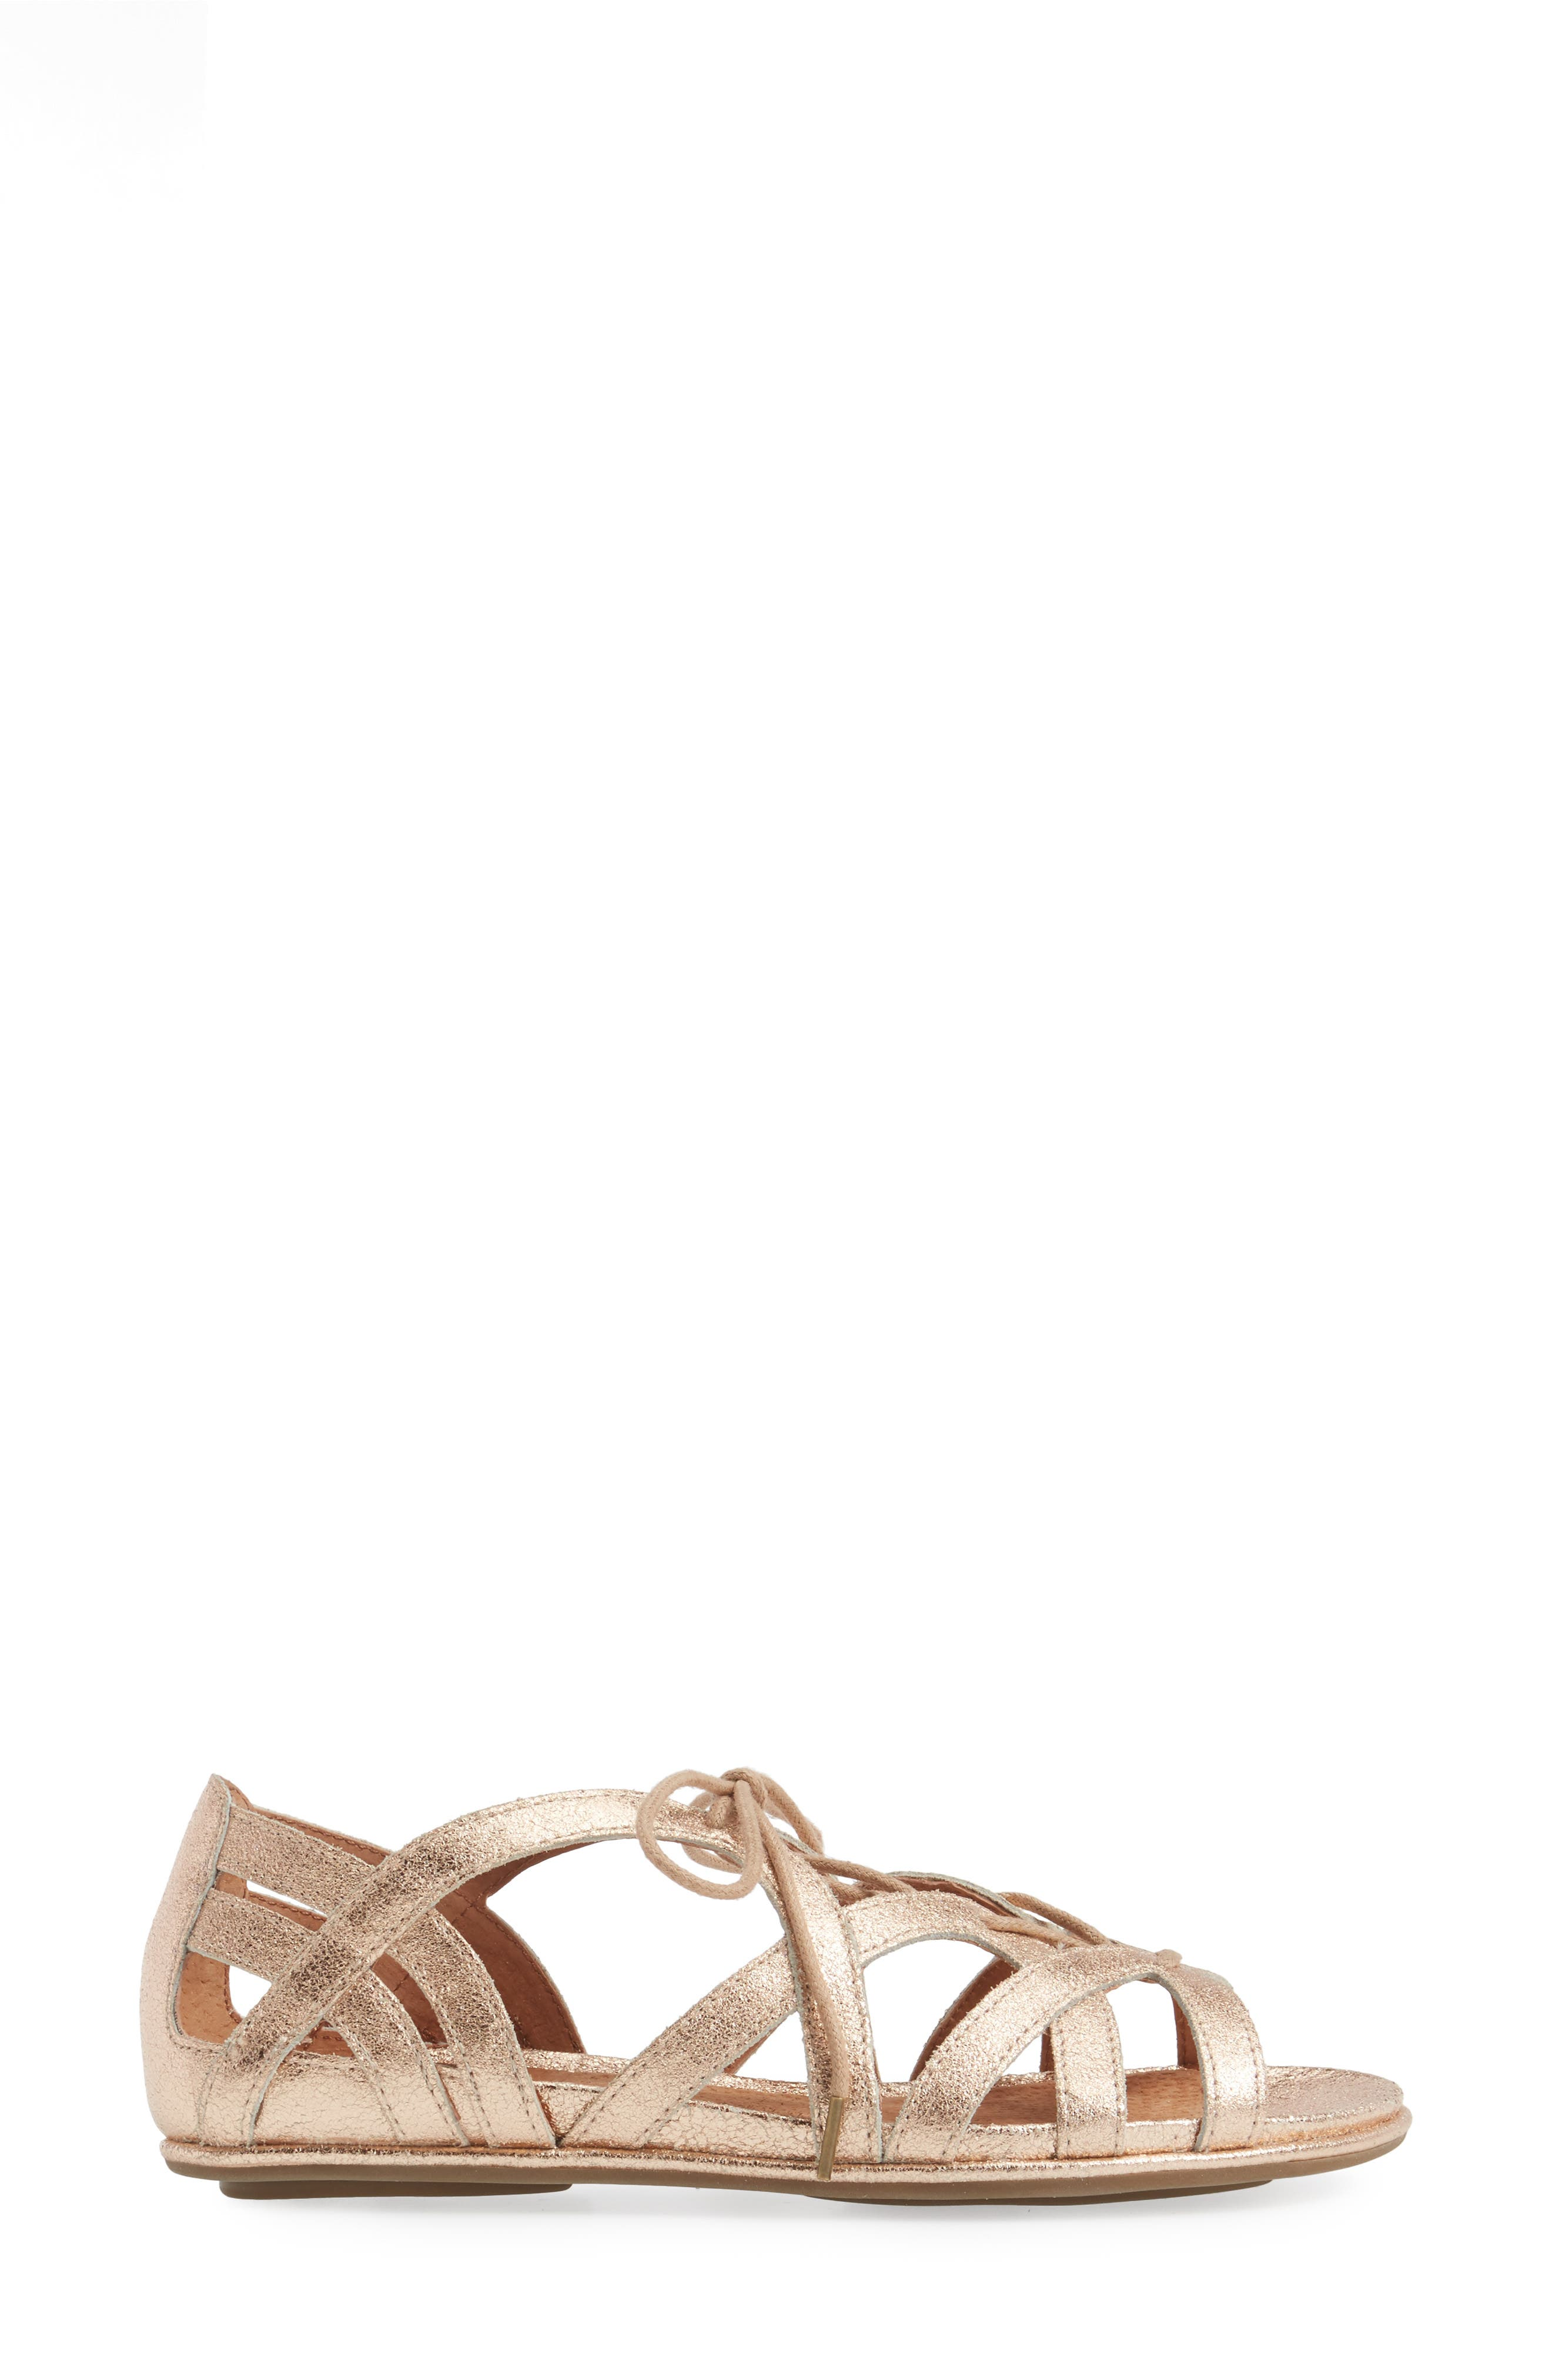 Alternate Image 3  - Gentle Souls 'Orly' Lace-Up Sandal (Women) (Nordstrom Exclusive)